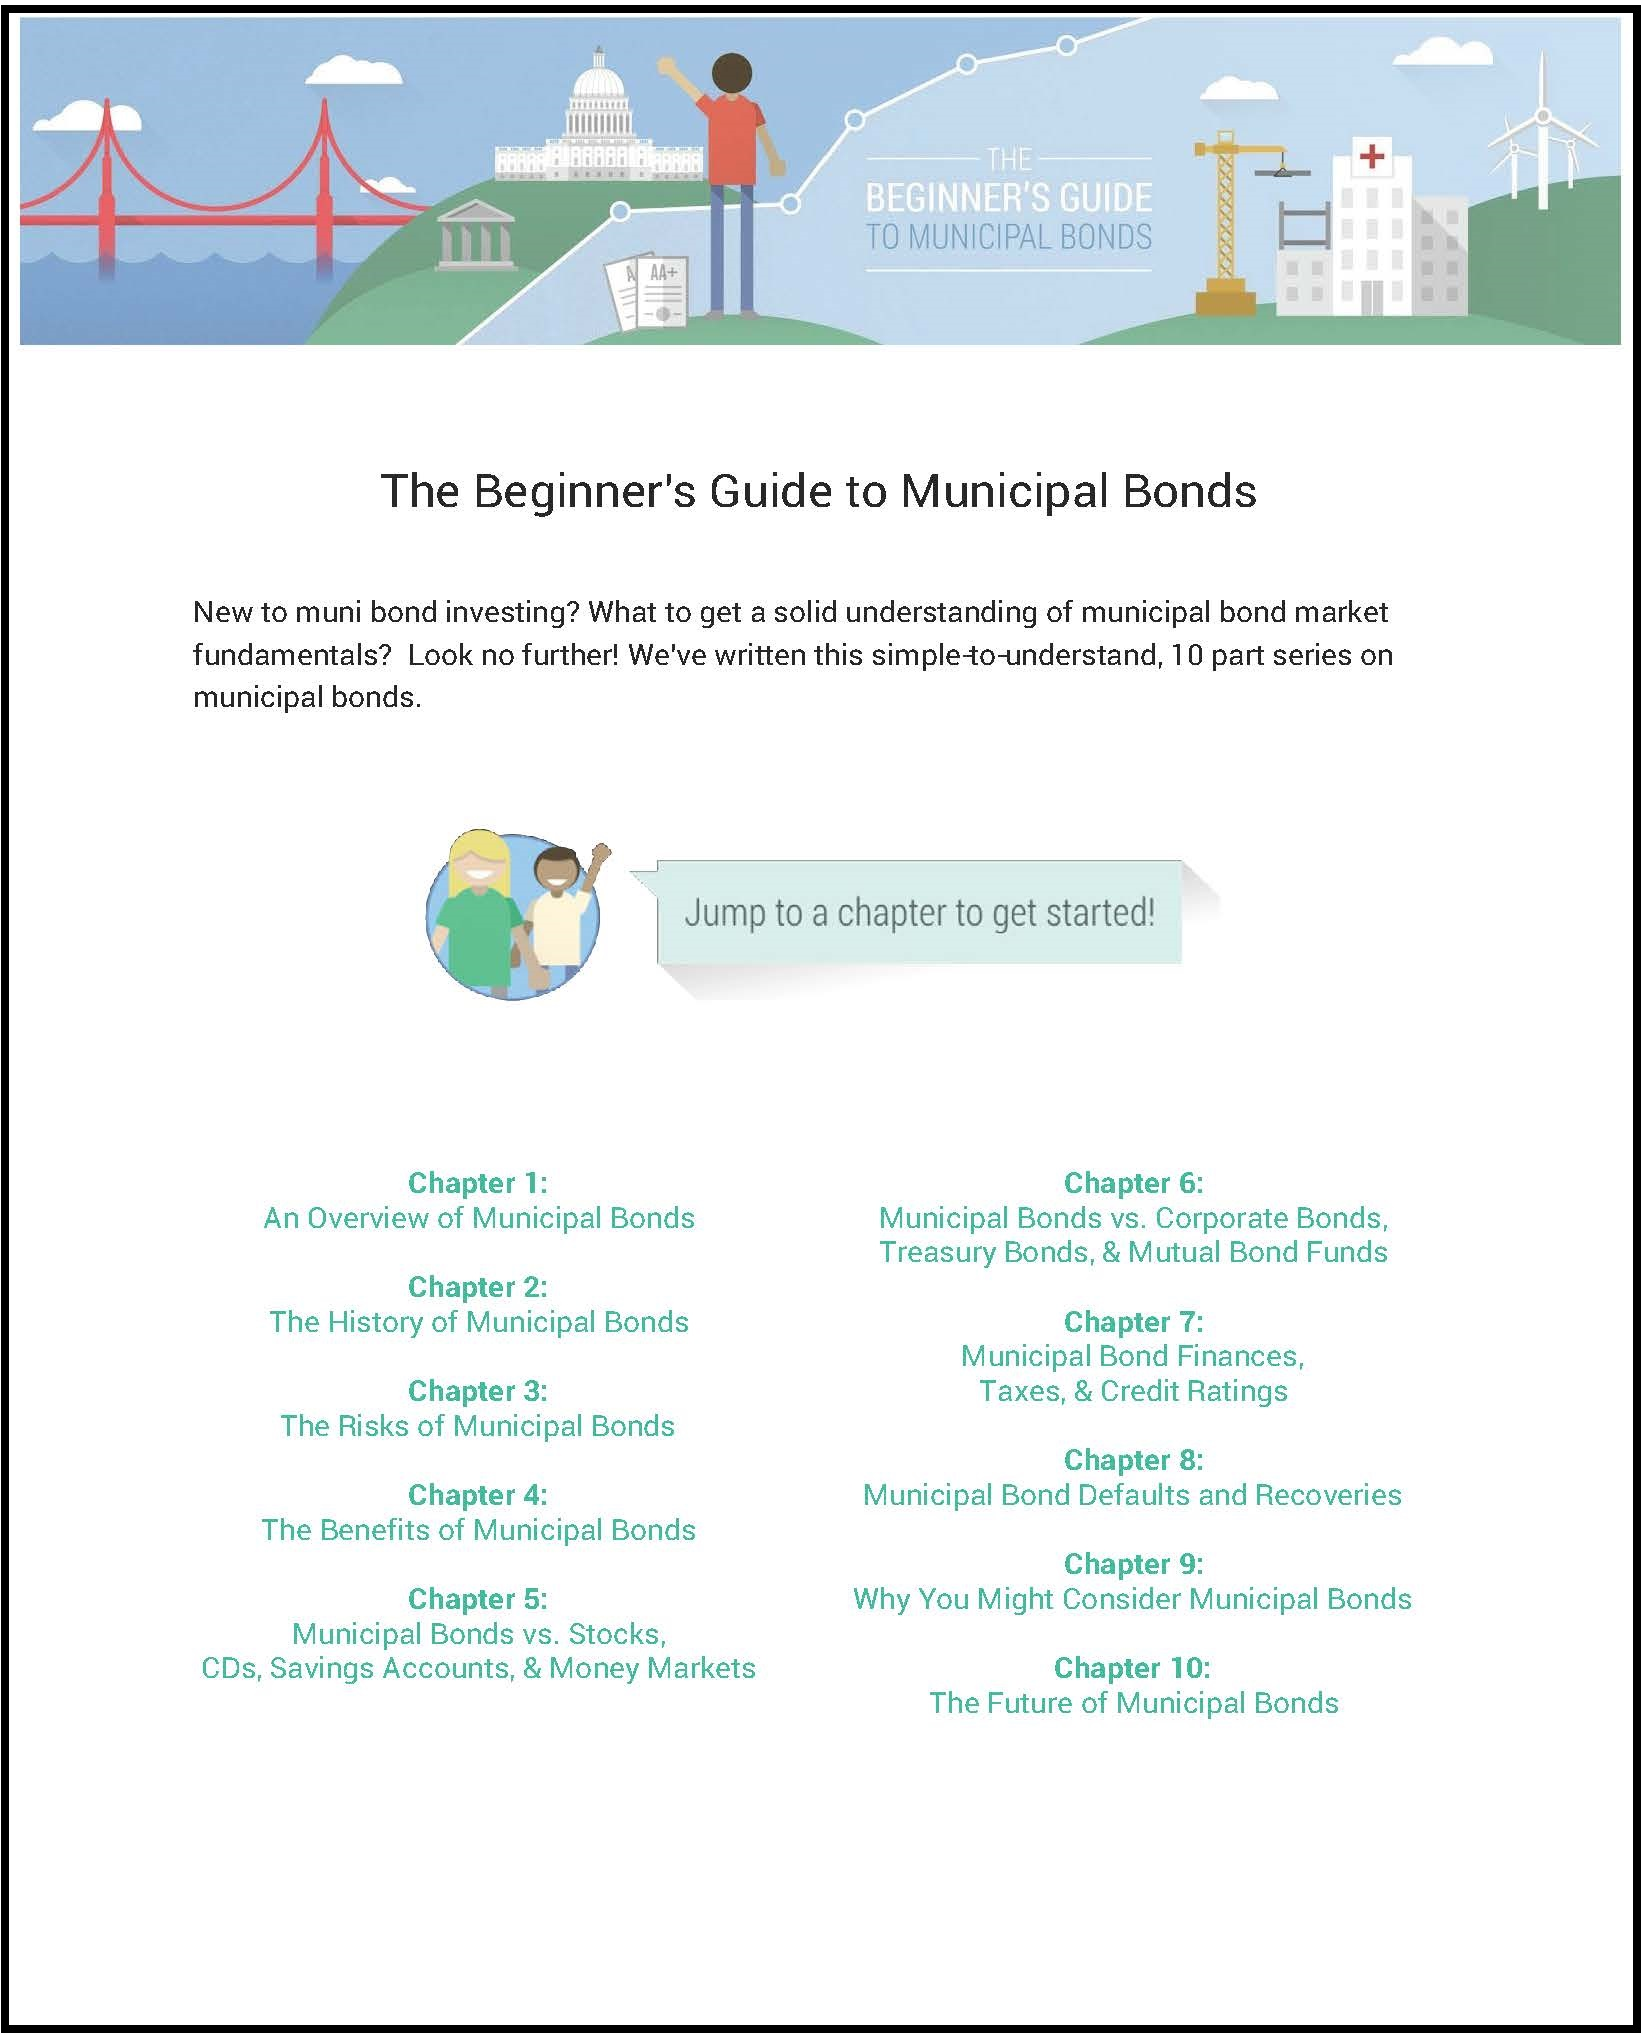 Beginners_guide_to_muni_bonds_image1.jpg